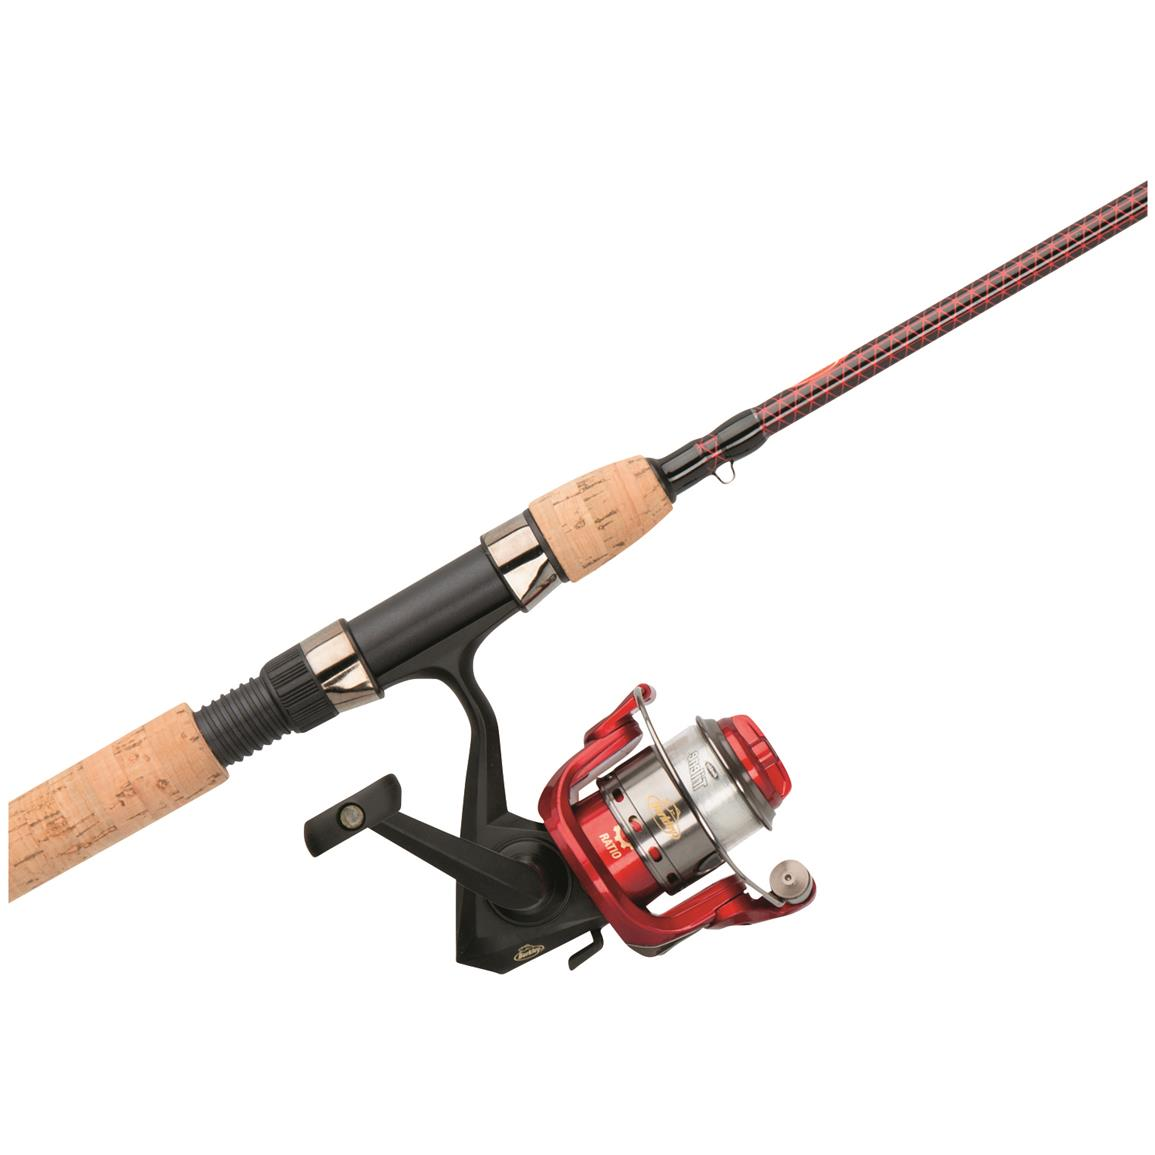 Berkley Cherrywood HD Spinning Rod and Reel Combo